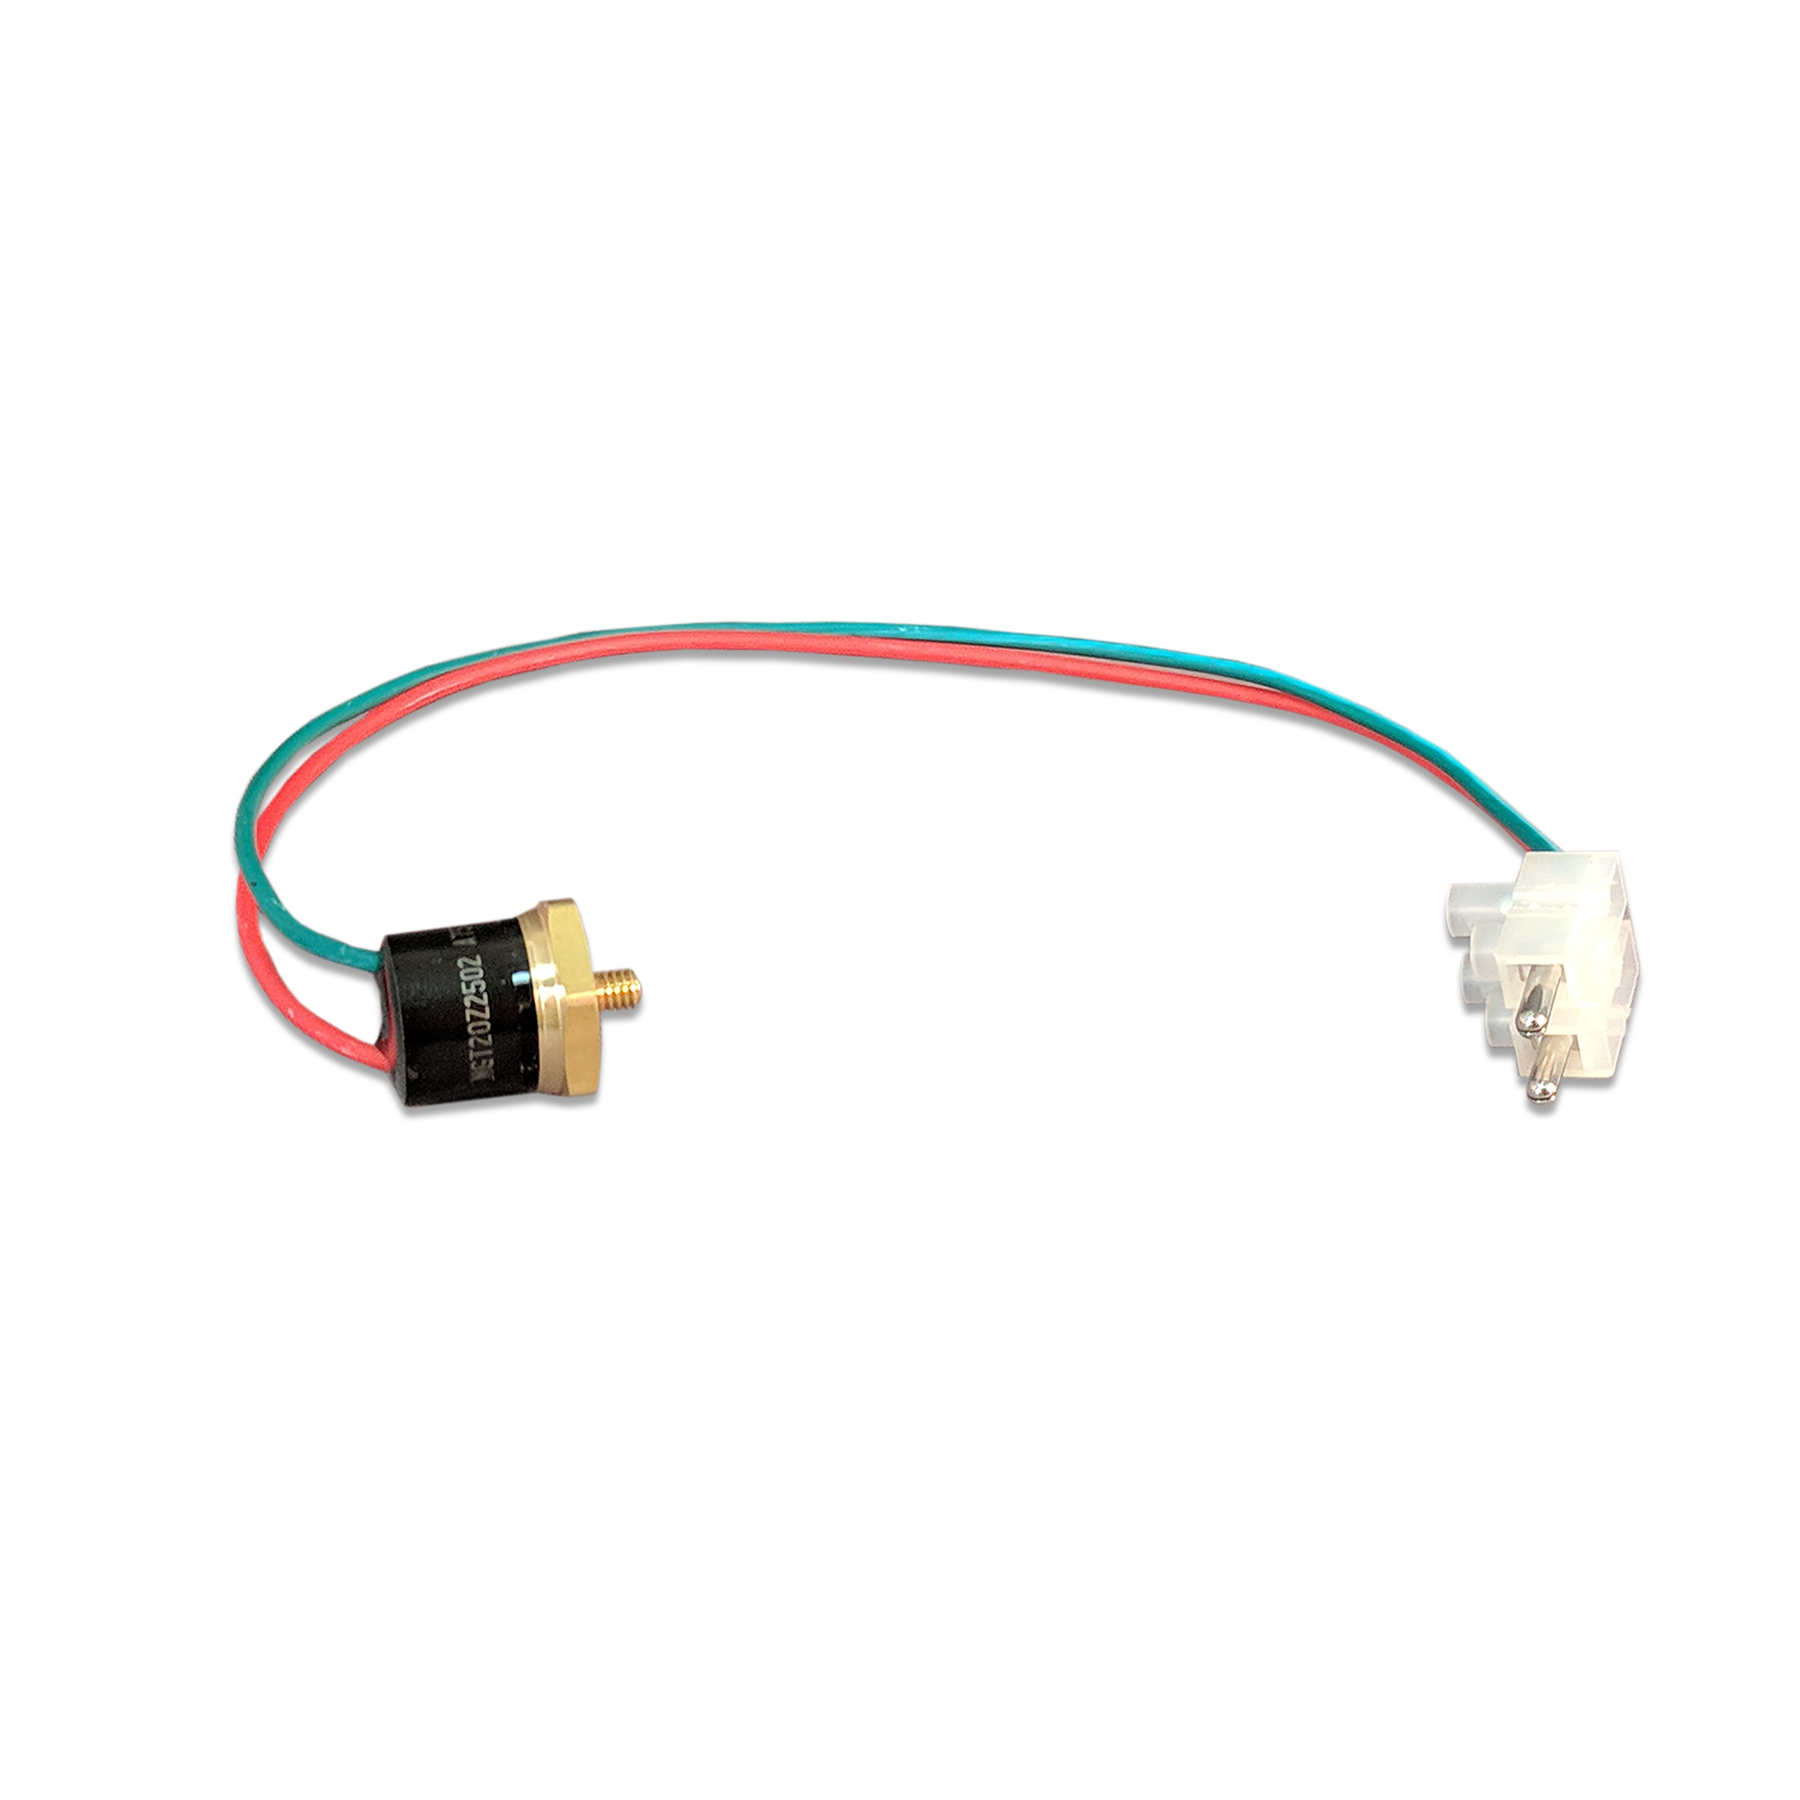 167 Degree F Control Thermostat w/Green & Red Wires